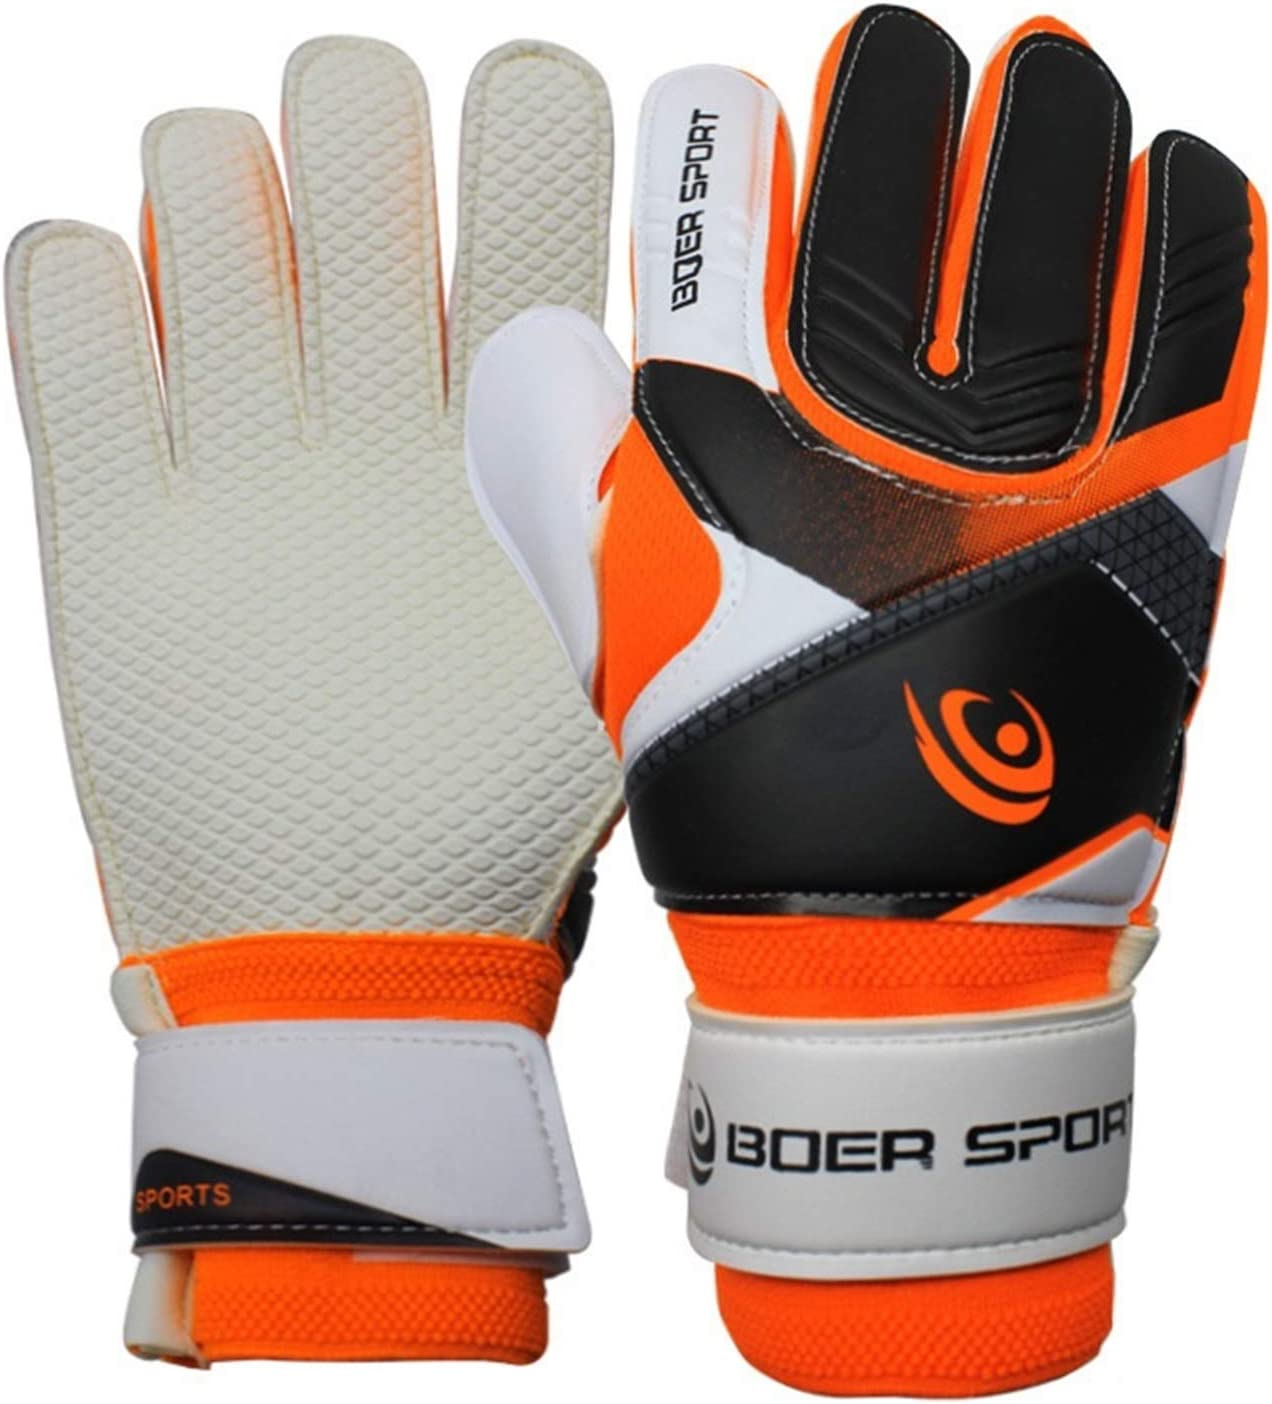 Discount is also underway ZHIZI Goalkeeper Popular products Gloves Sports Football Youth